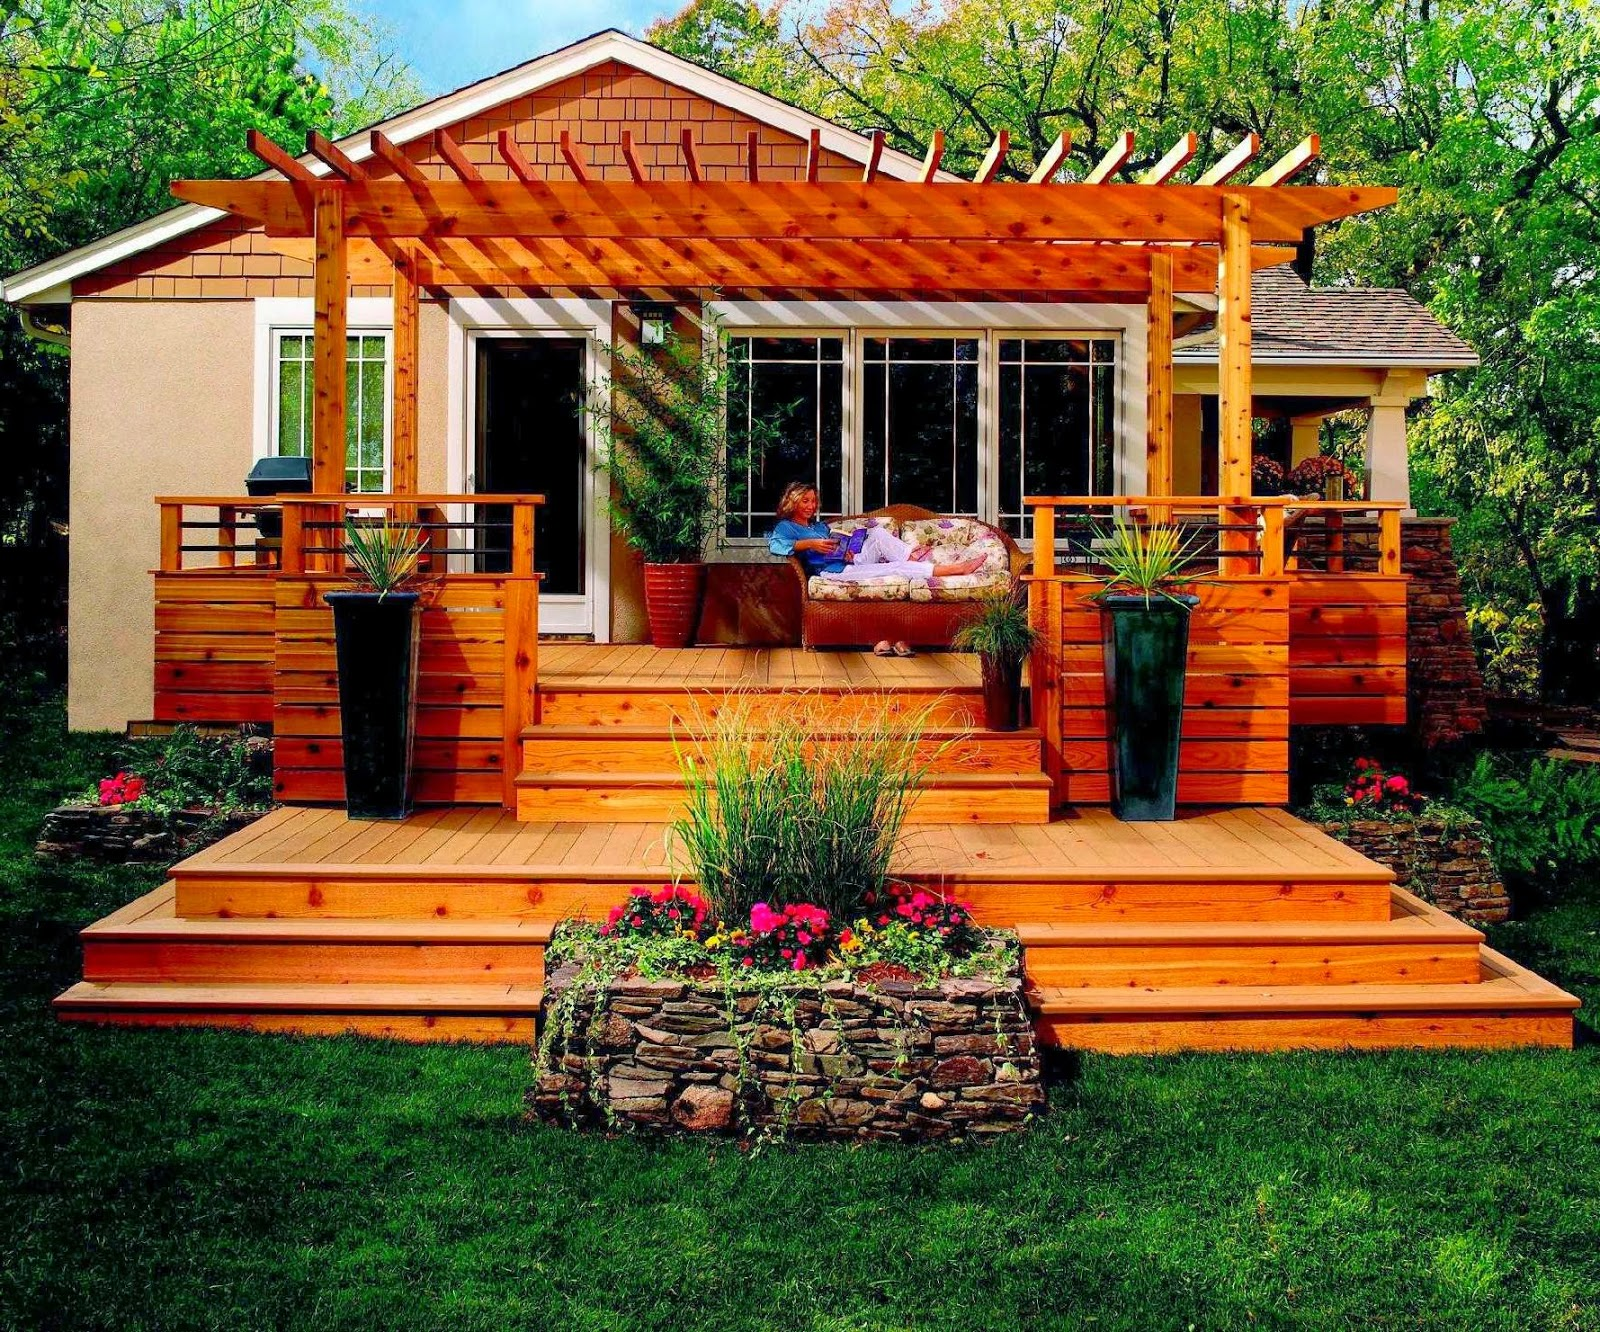 Awesome backyard deck design  Backyard Design Ideas